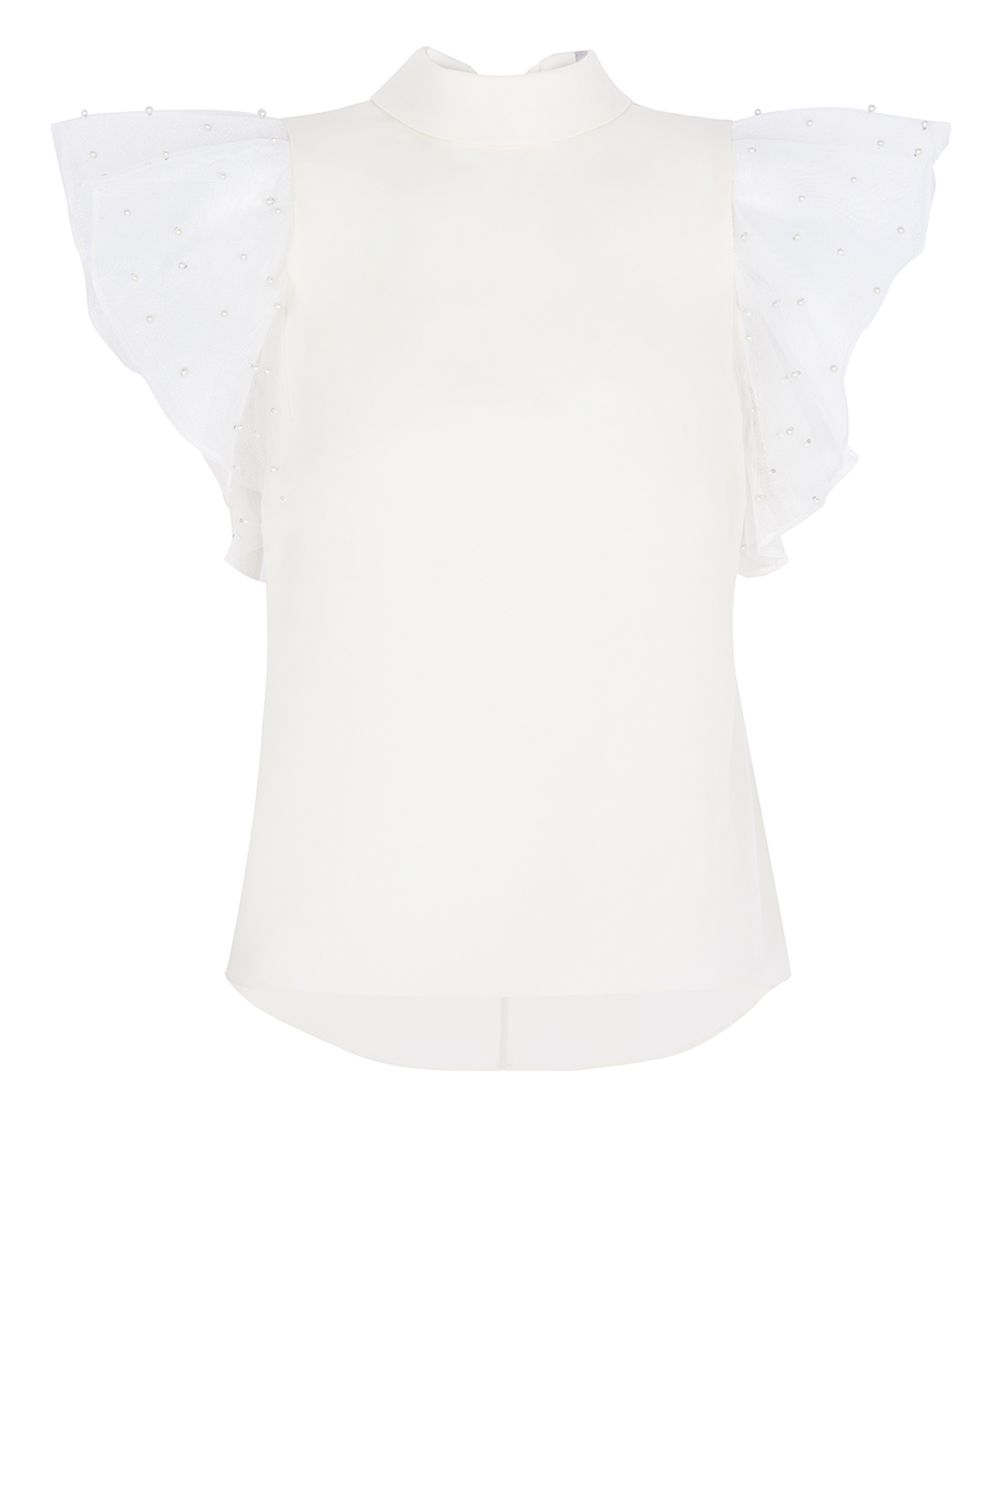 Coast Aliysia Pearl Embroidered Top, White